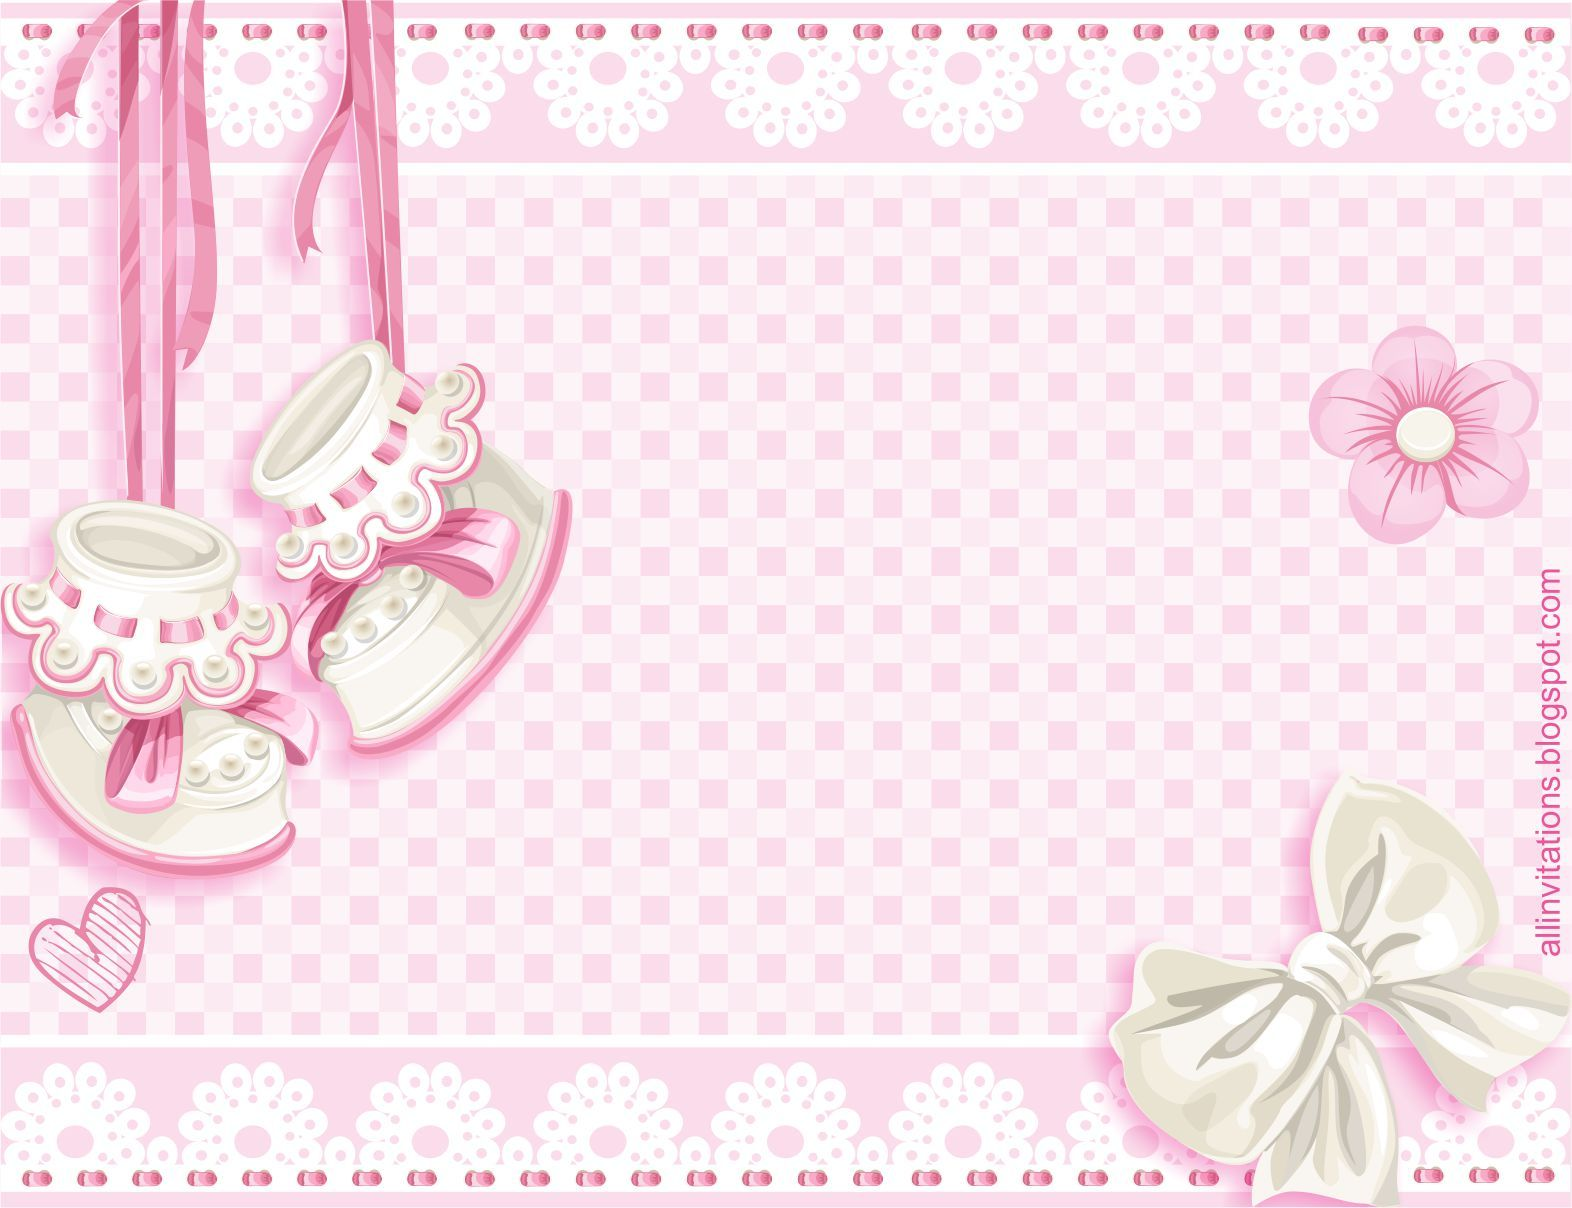 Plantilla invitacion baby shower zapatitos niña | baby shower ...